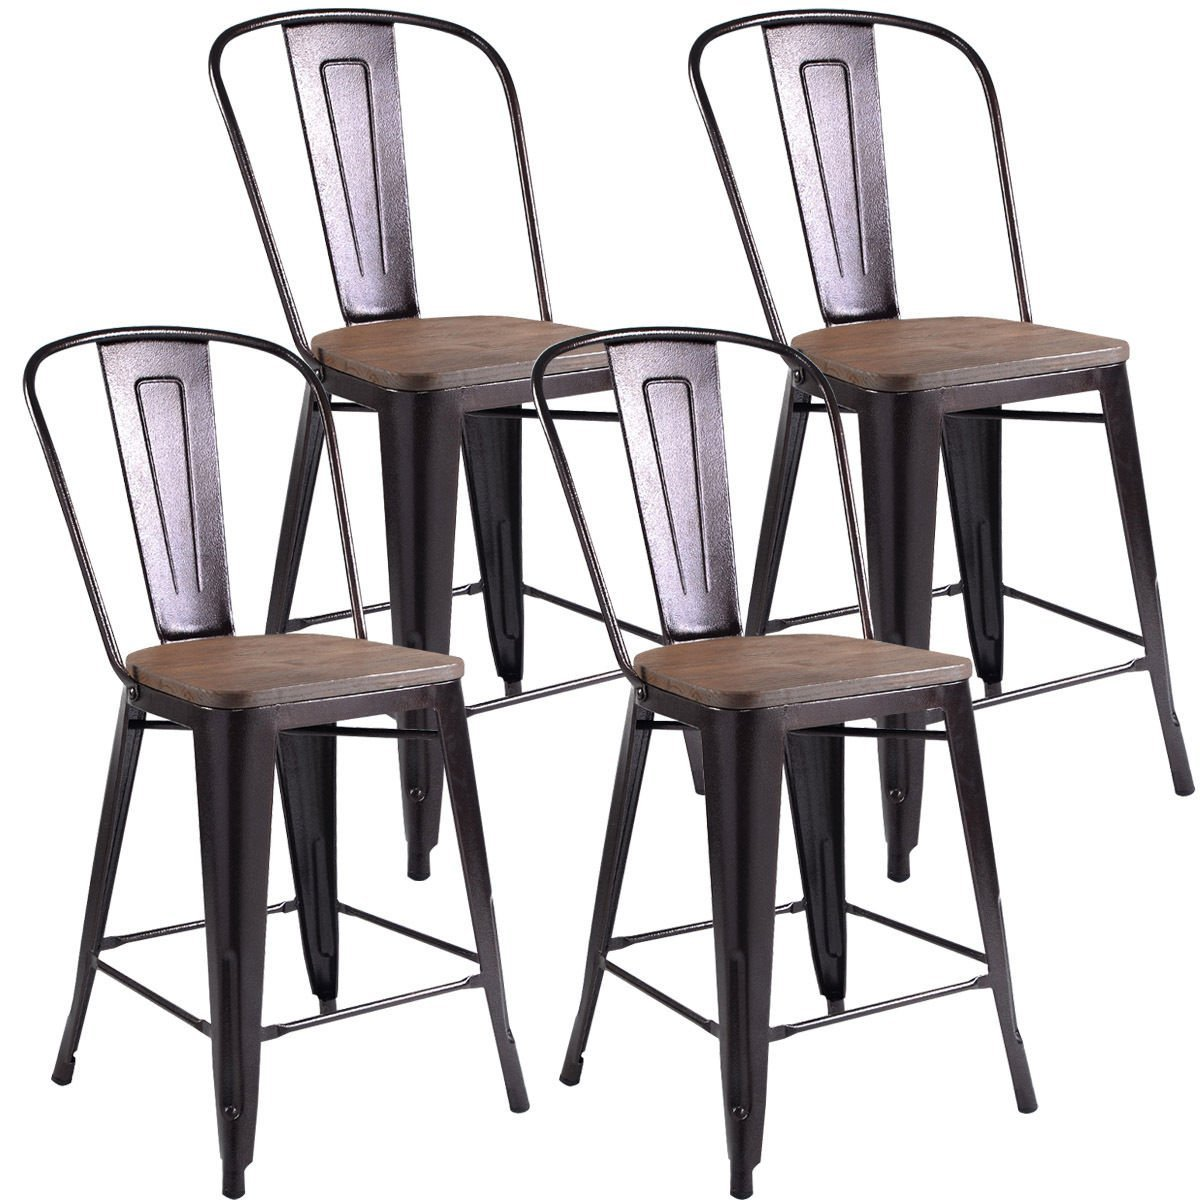 Global House Products GHP 4-Pcs 330-Lbs Capacity Natural Vintage Iron Counter Height Stools with Footrest